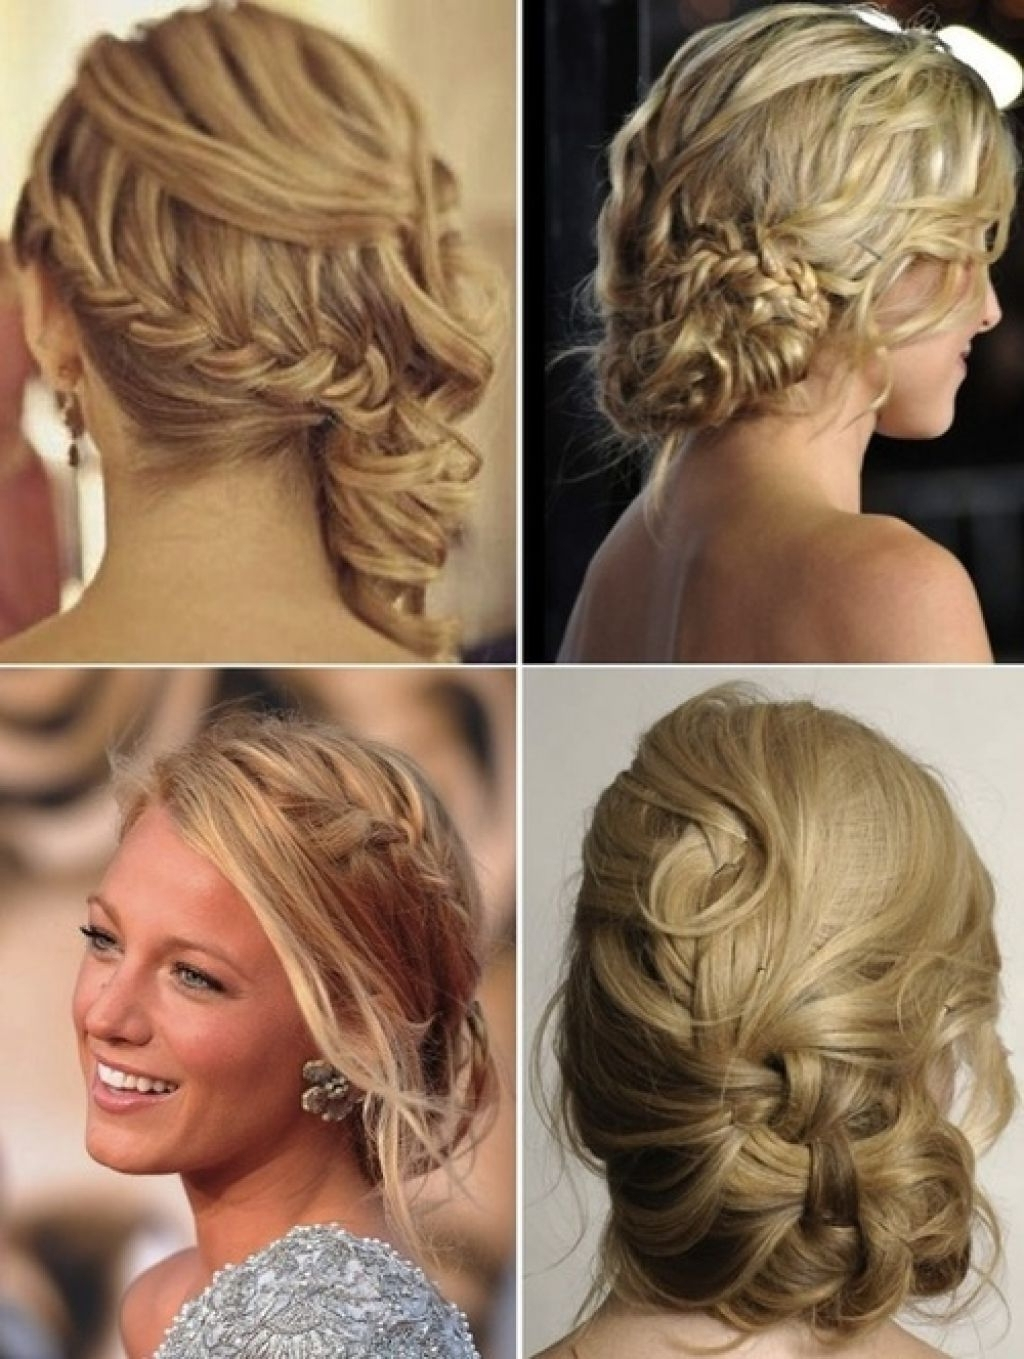 Hairstyles For Wedding Guests Medium Length Hair Casual Wedding Regarding Well Known Hairstyles For Medium Length Hair For Wedding Guest (View 7 of 15)